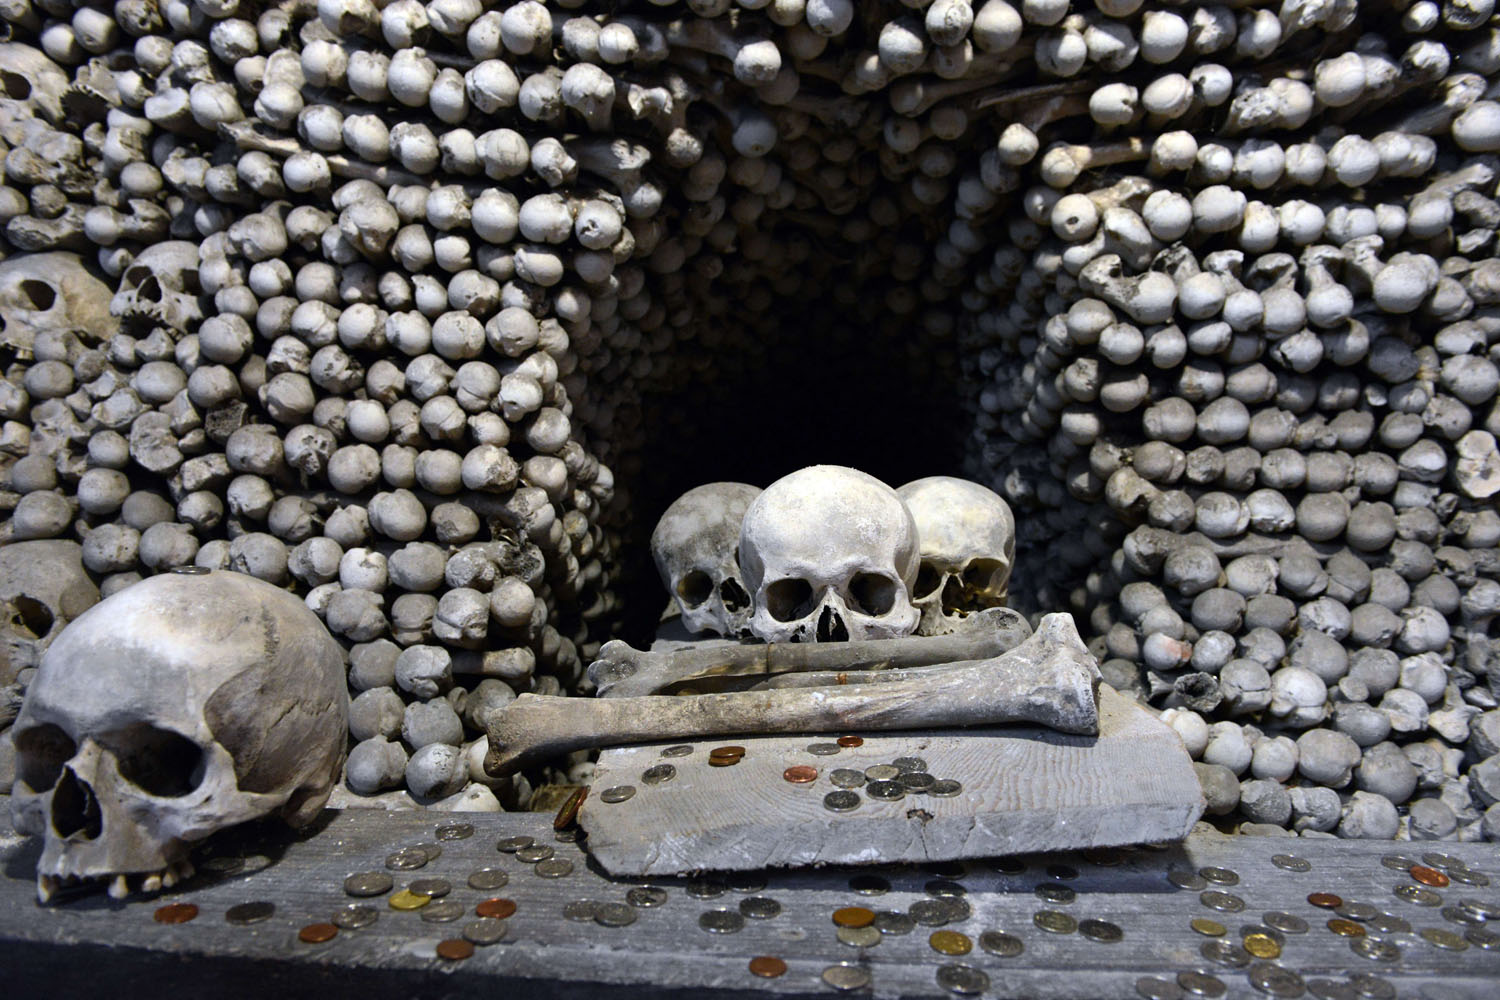 Jan. 4, 2014. Coin-offerings are seen on one of the bone pyramids in the Sedlec Ossuary chapel beneath the Cemetery Church of All Saints in Sedlec, suburb of Kutna Hora, Czech Republic.